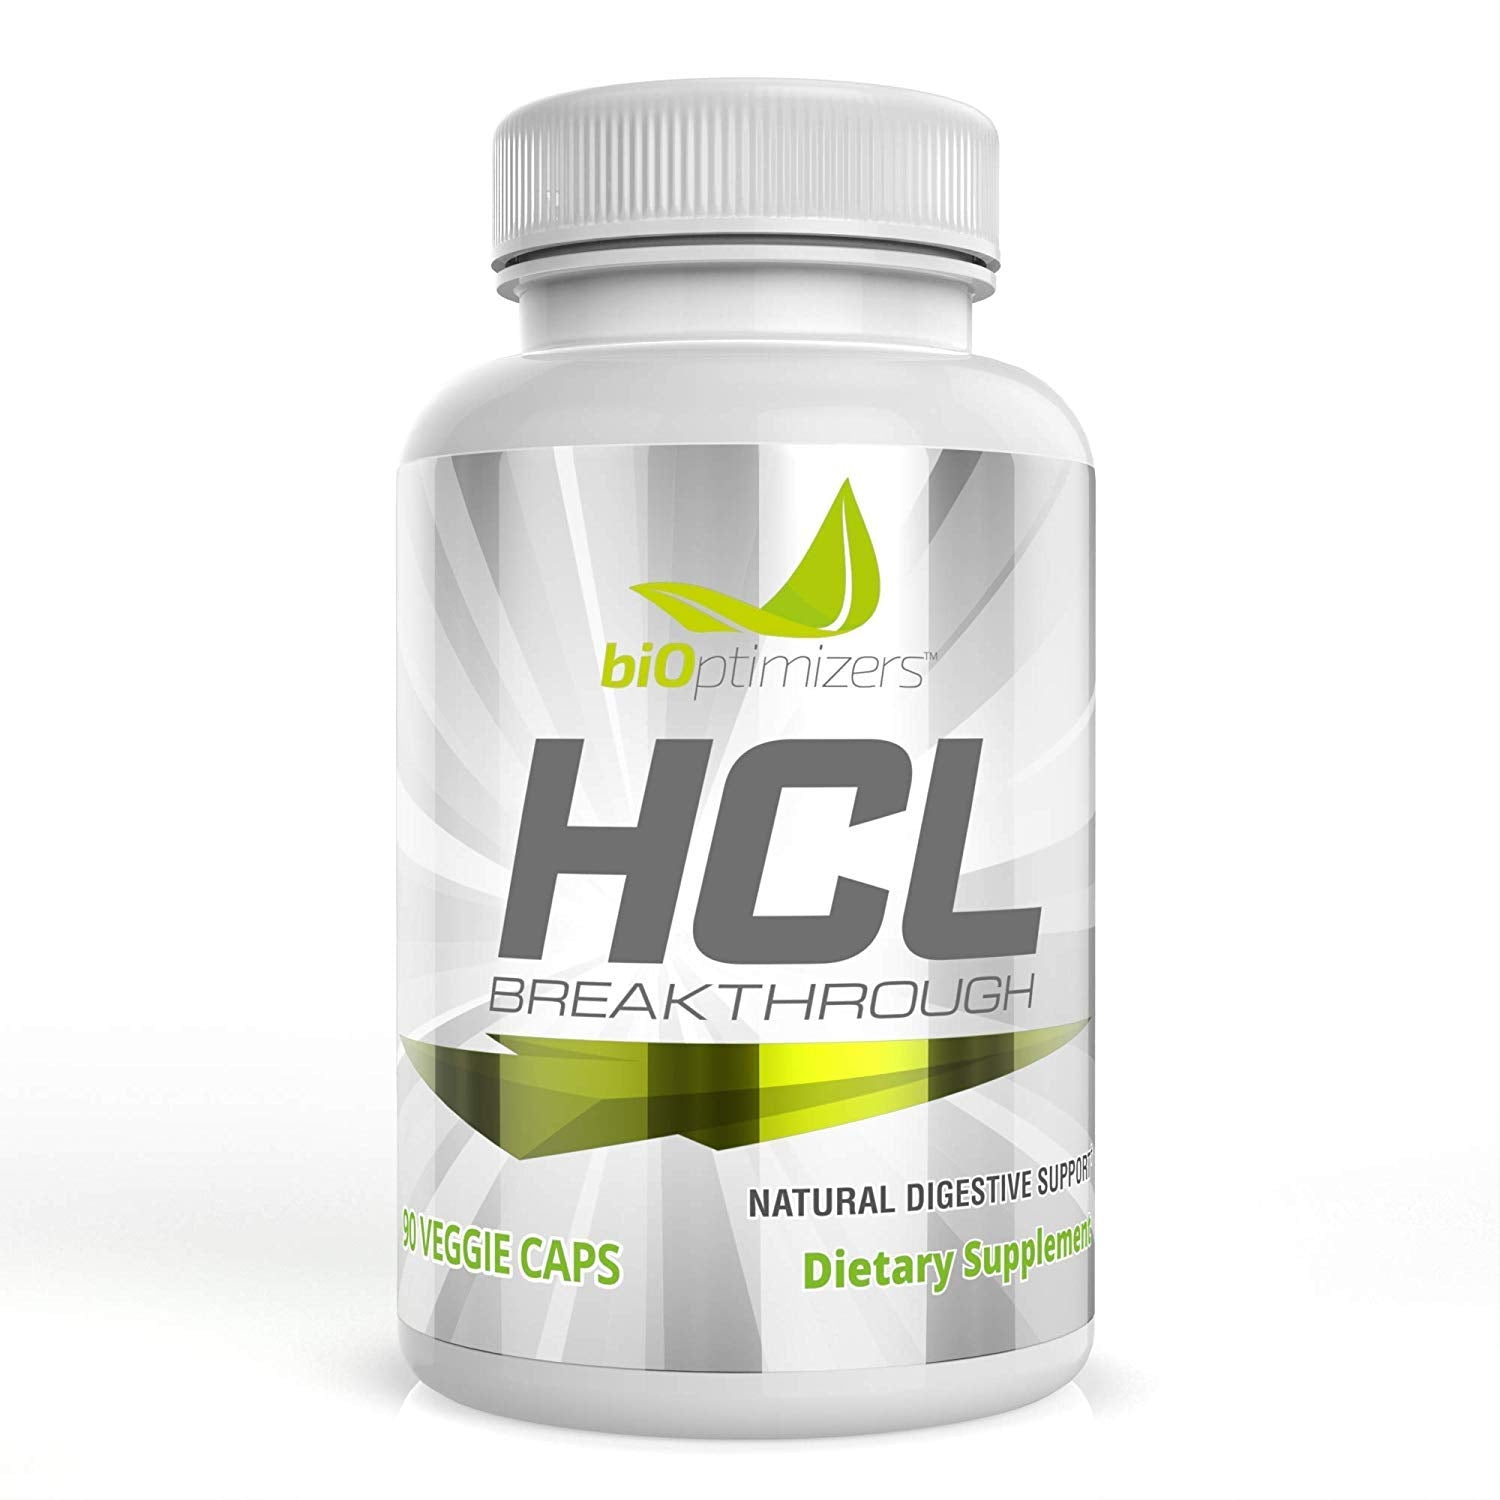 HCL Breakthrough - UpgradeTheAlpha Australia